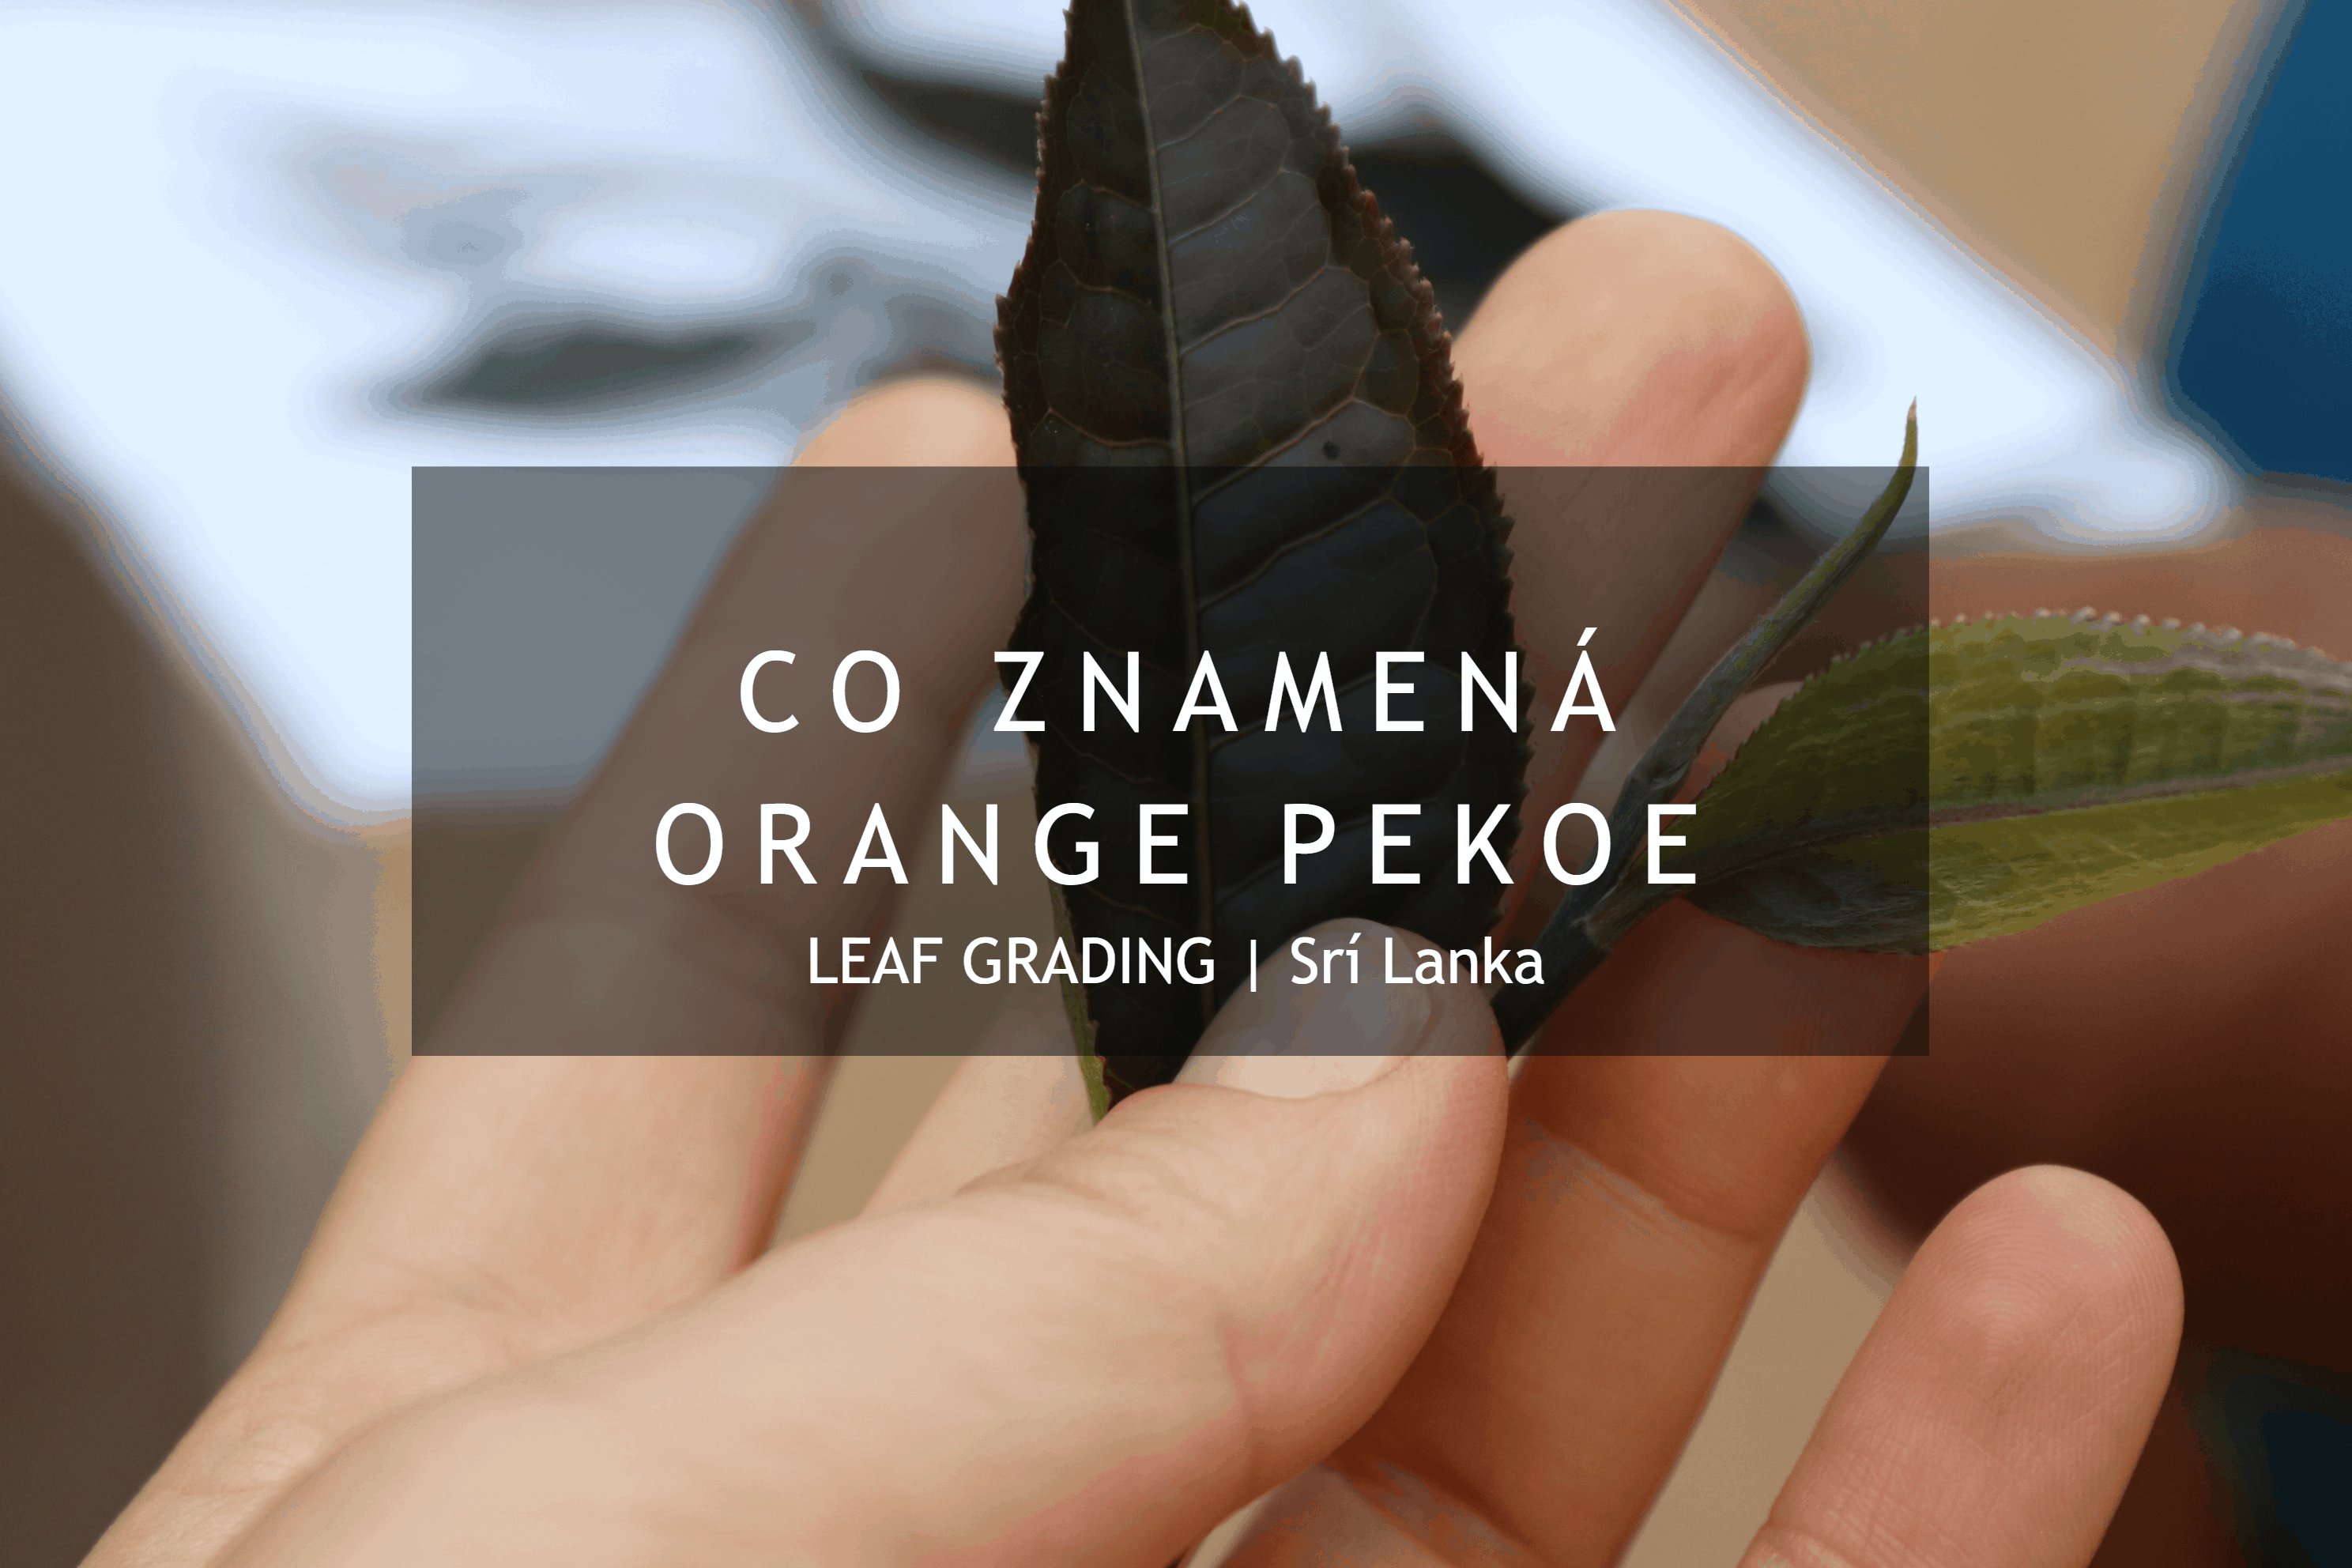 Co znamená Orange Pekoe?